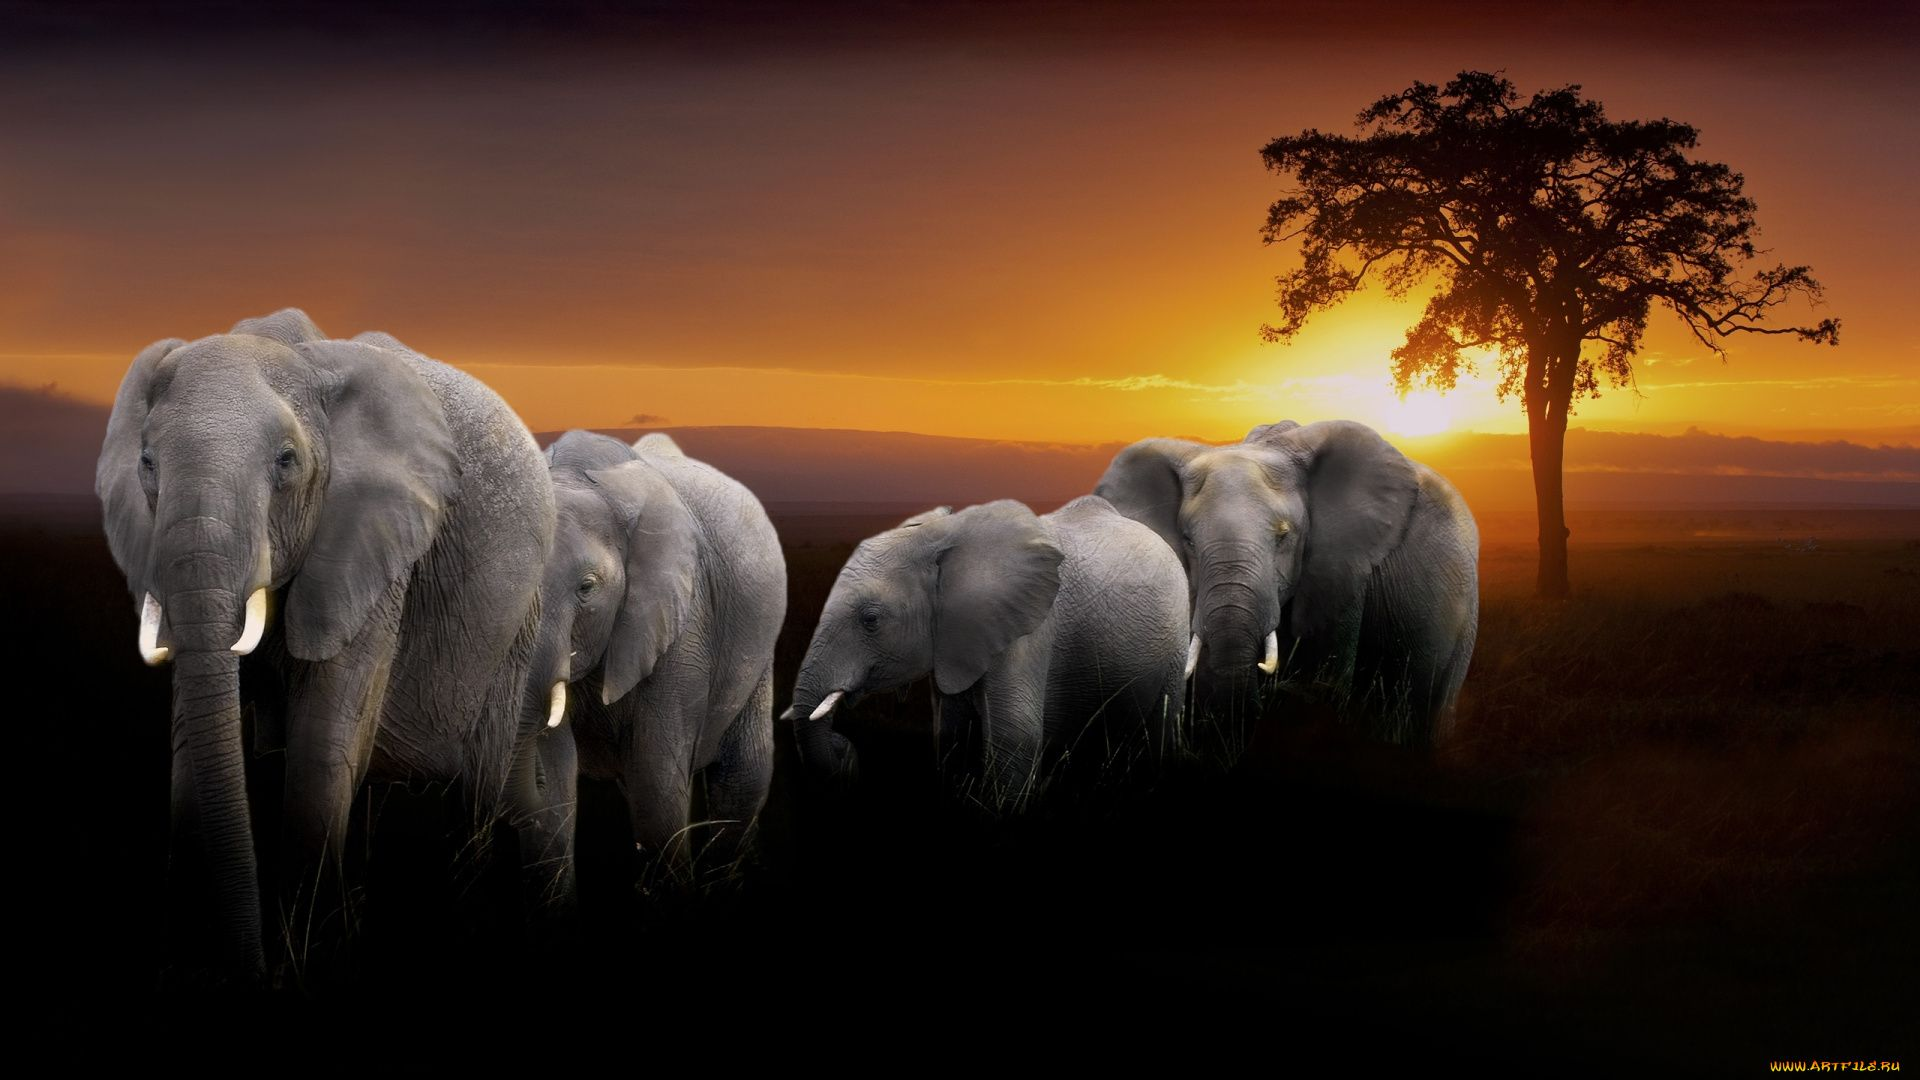 Elephant Pictures Africa Sunset